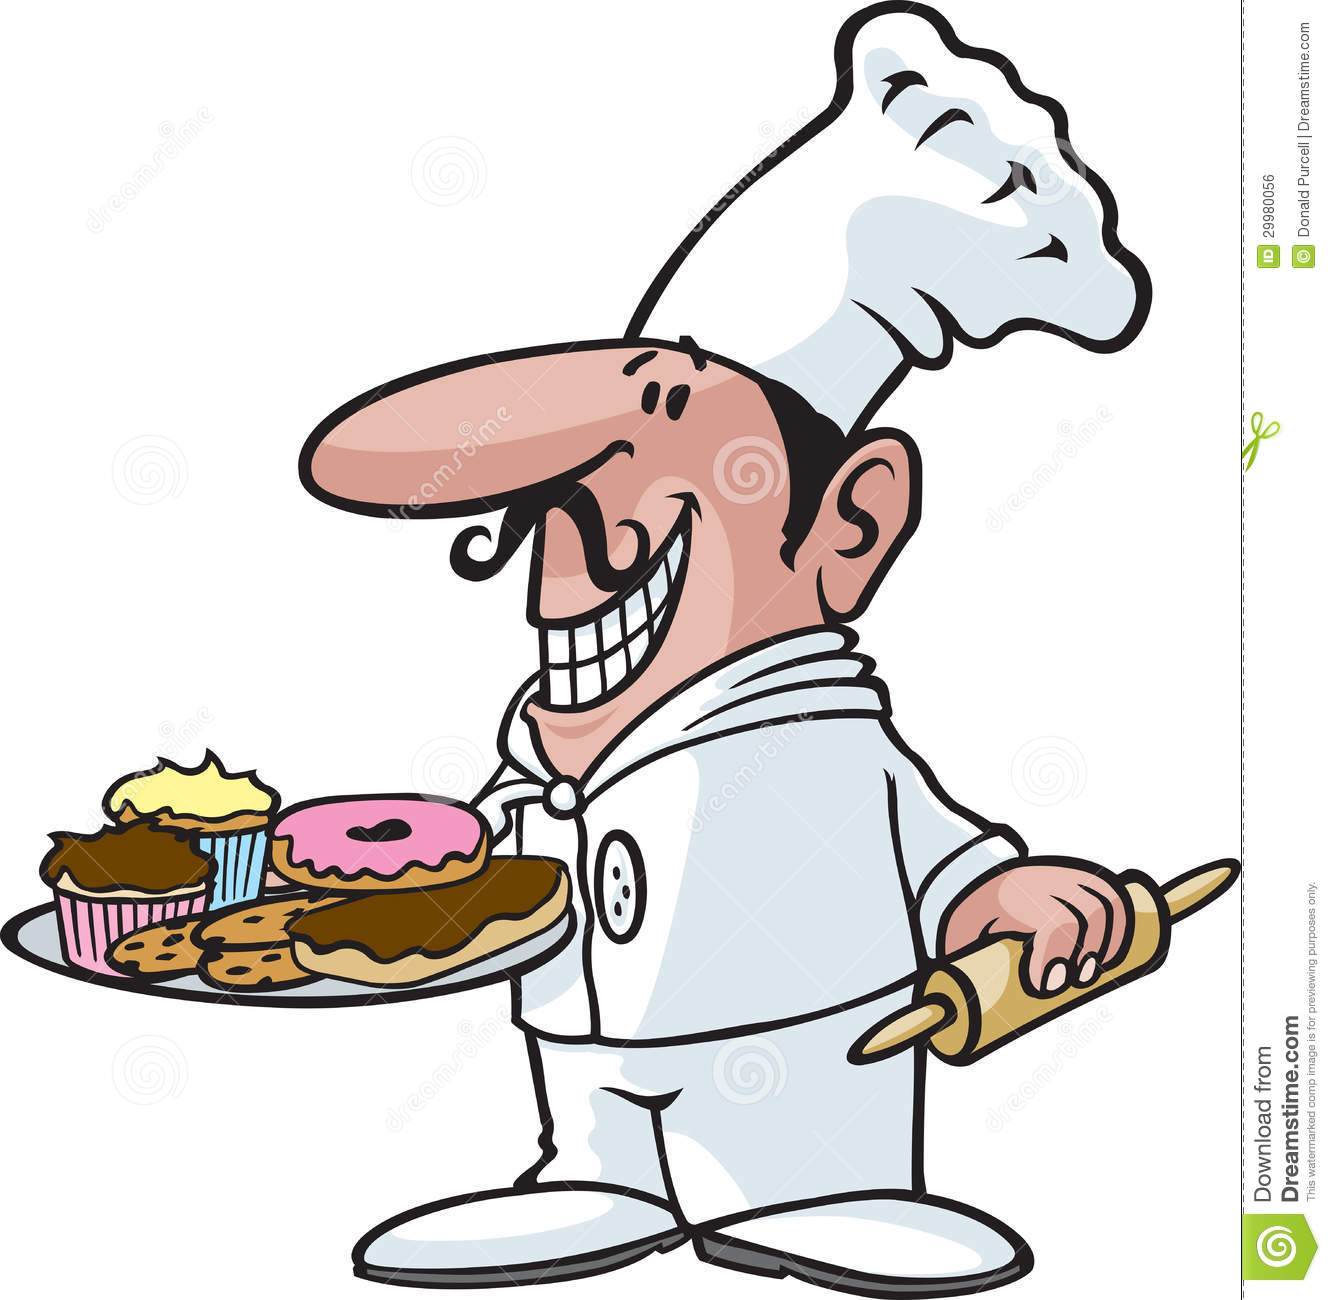 chef royalty free stock image image 29980056 steak clip art image steak clip art free